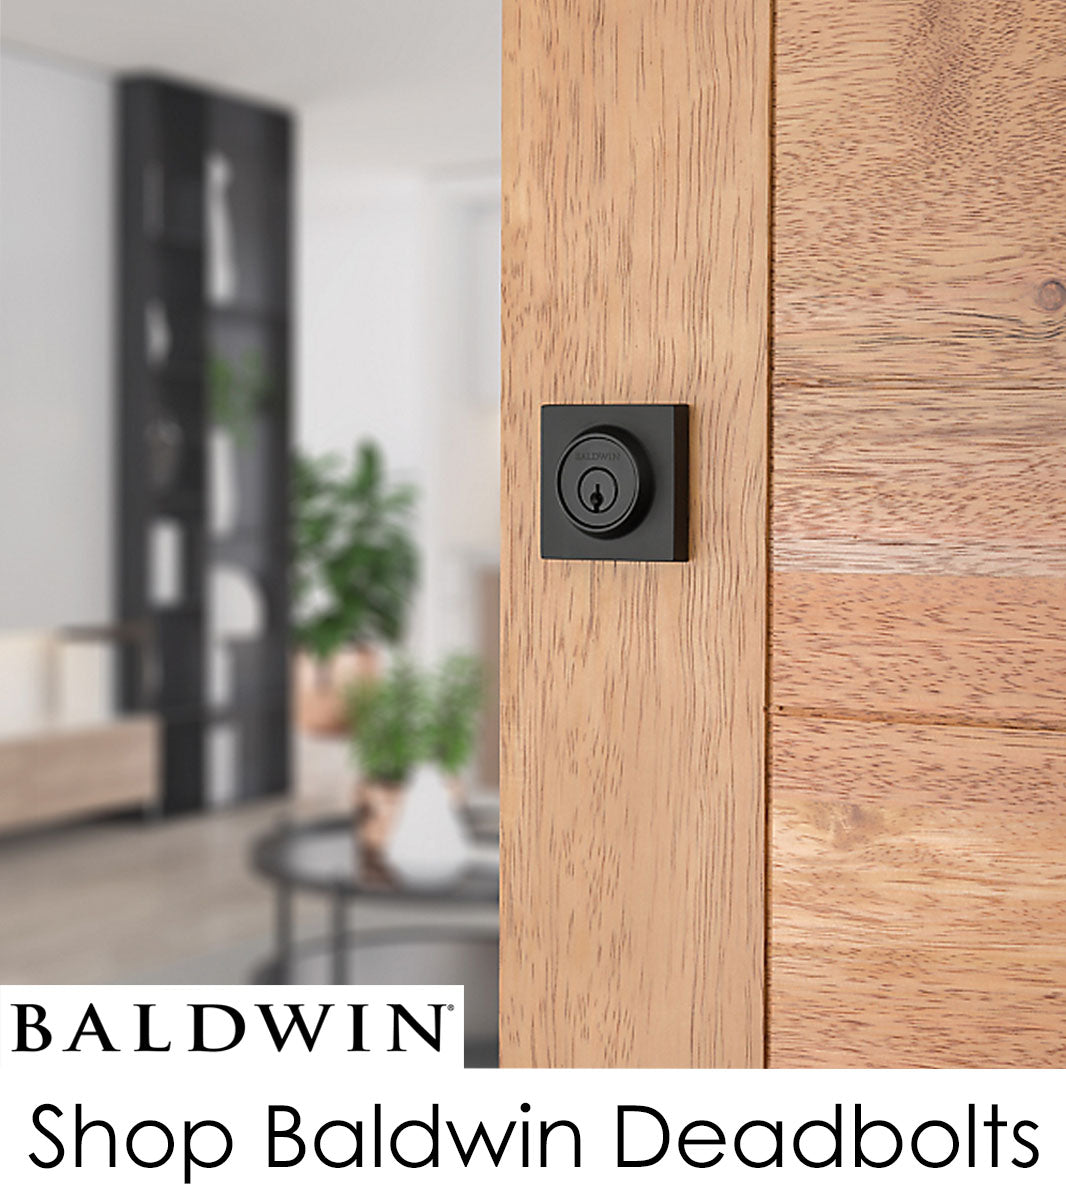 Baldwin Deadbolts Link